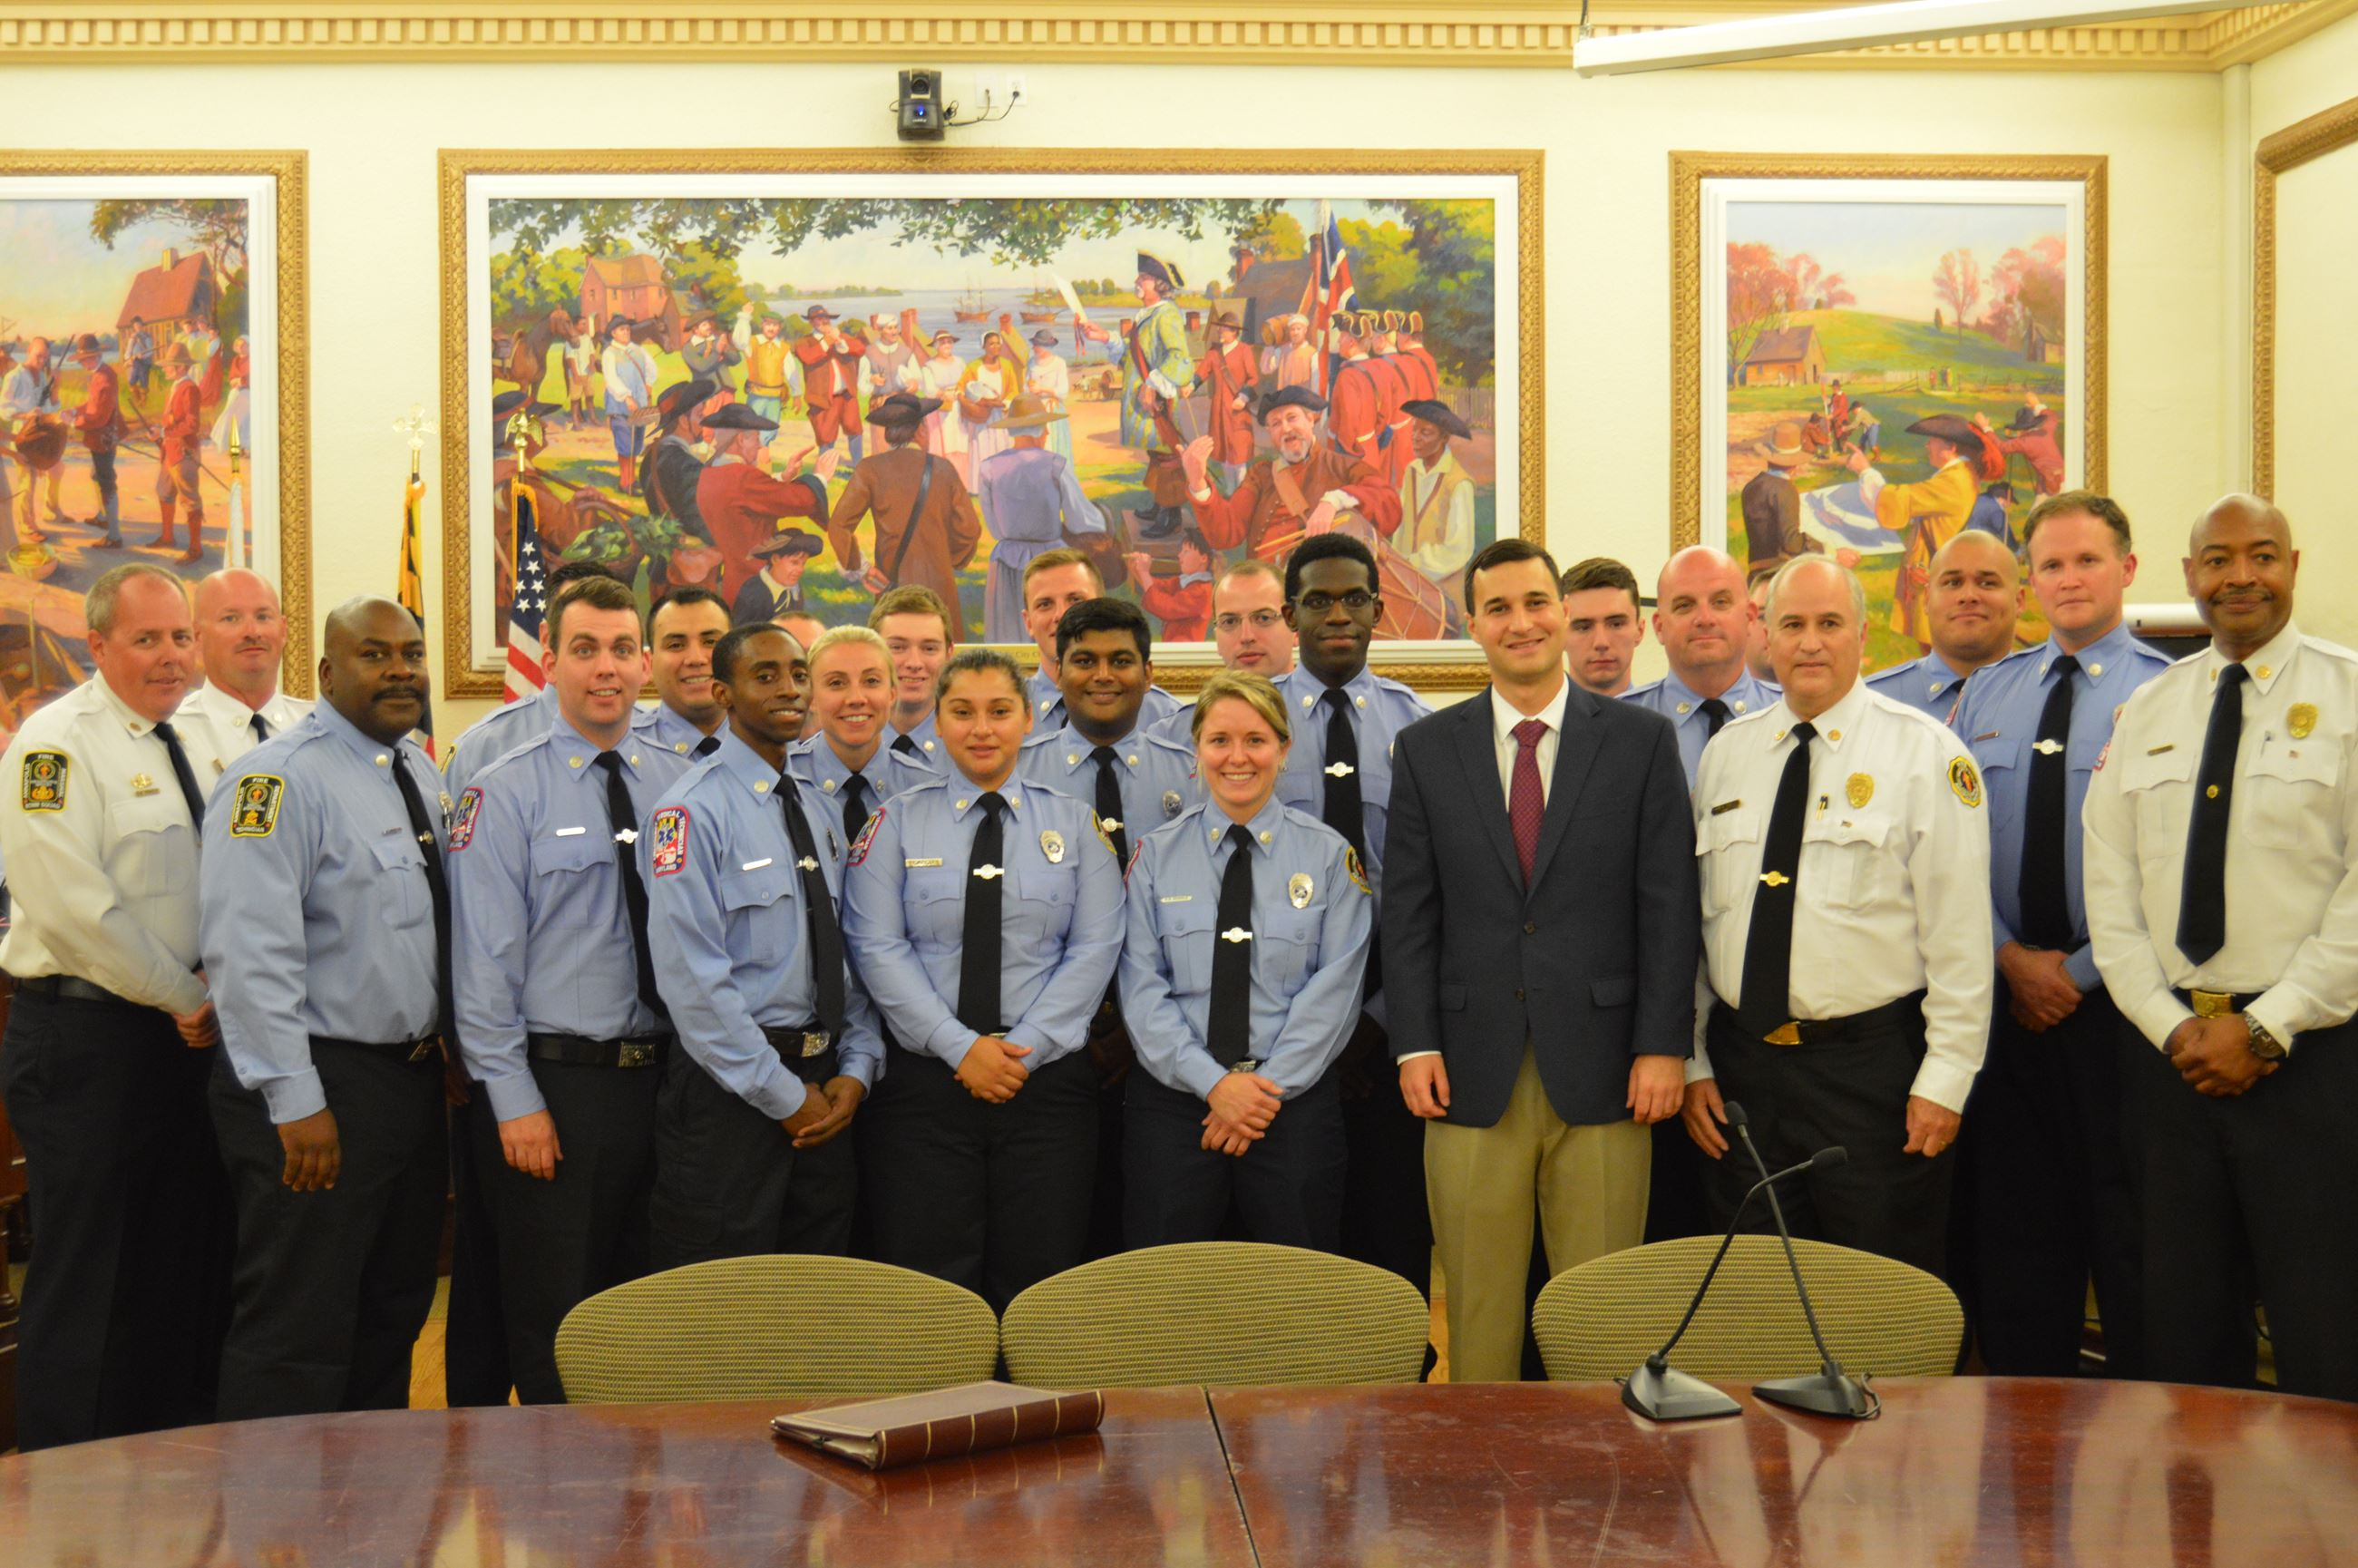 Mayor Pantelides with members of AFD and OEM at City Council Chambers